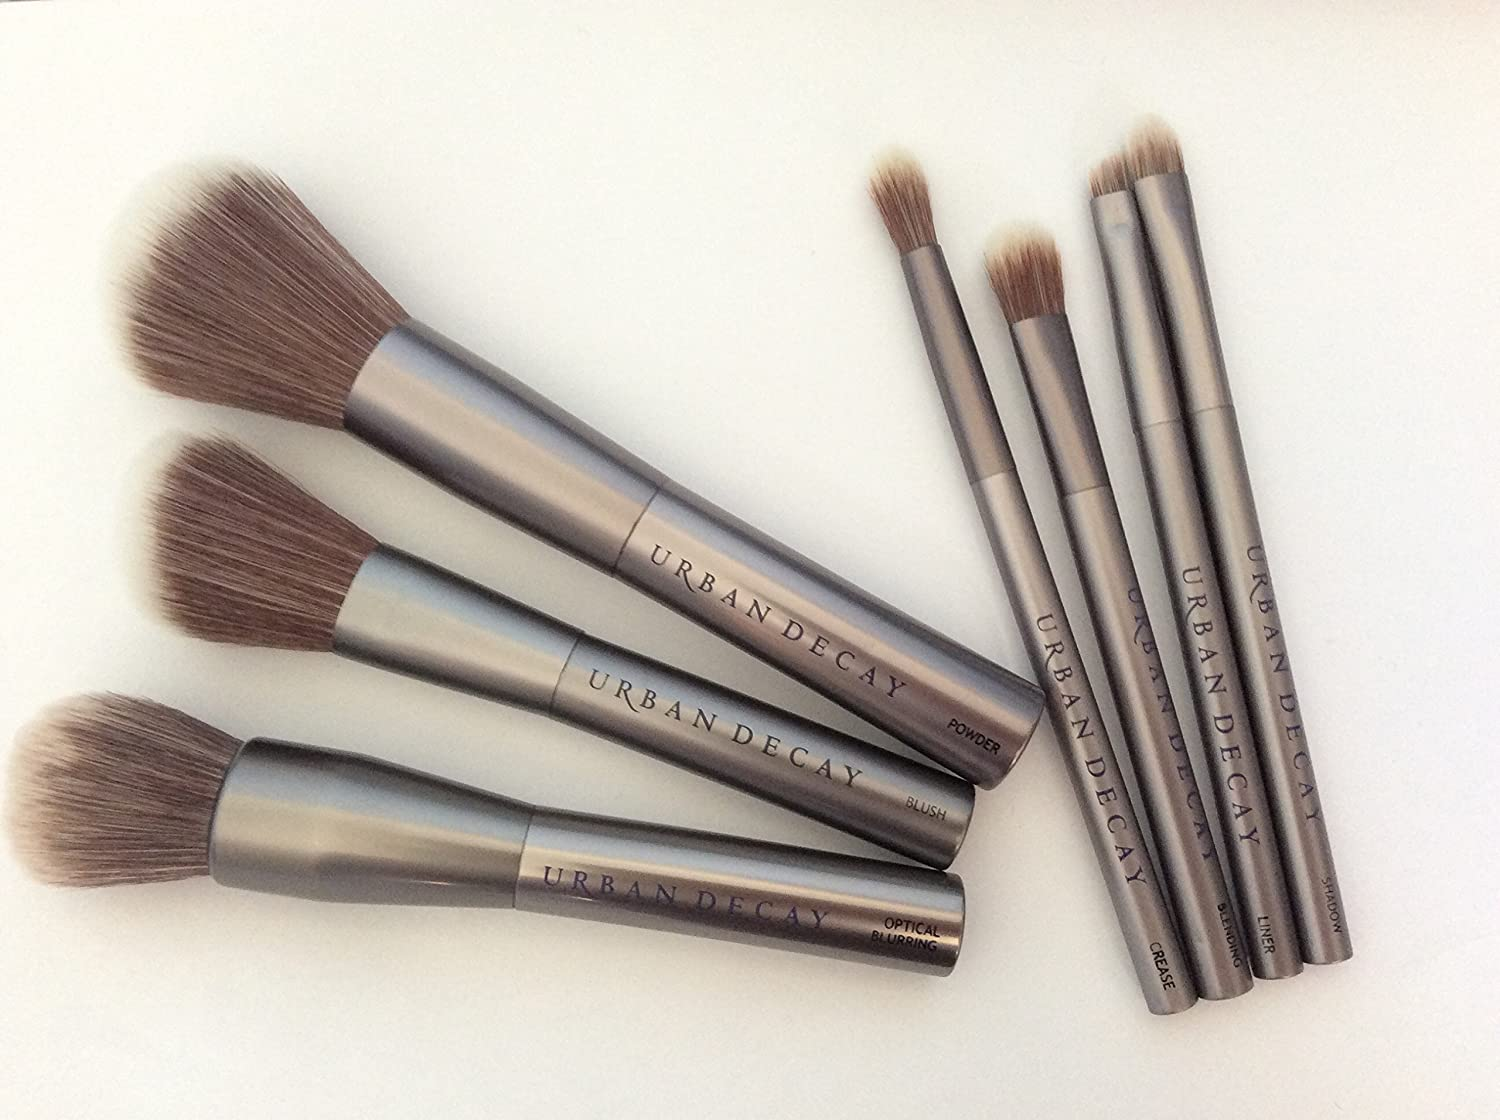 urban decay brushes. urban decay 7 pieces good karma brush set - amazing limited offer: amazon.co.uk: beauty urban decay brushes